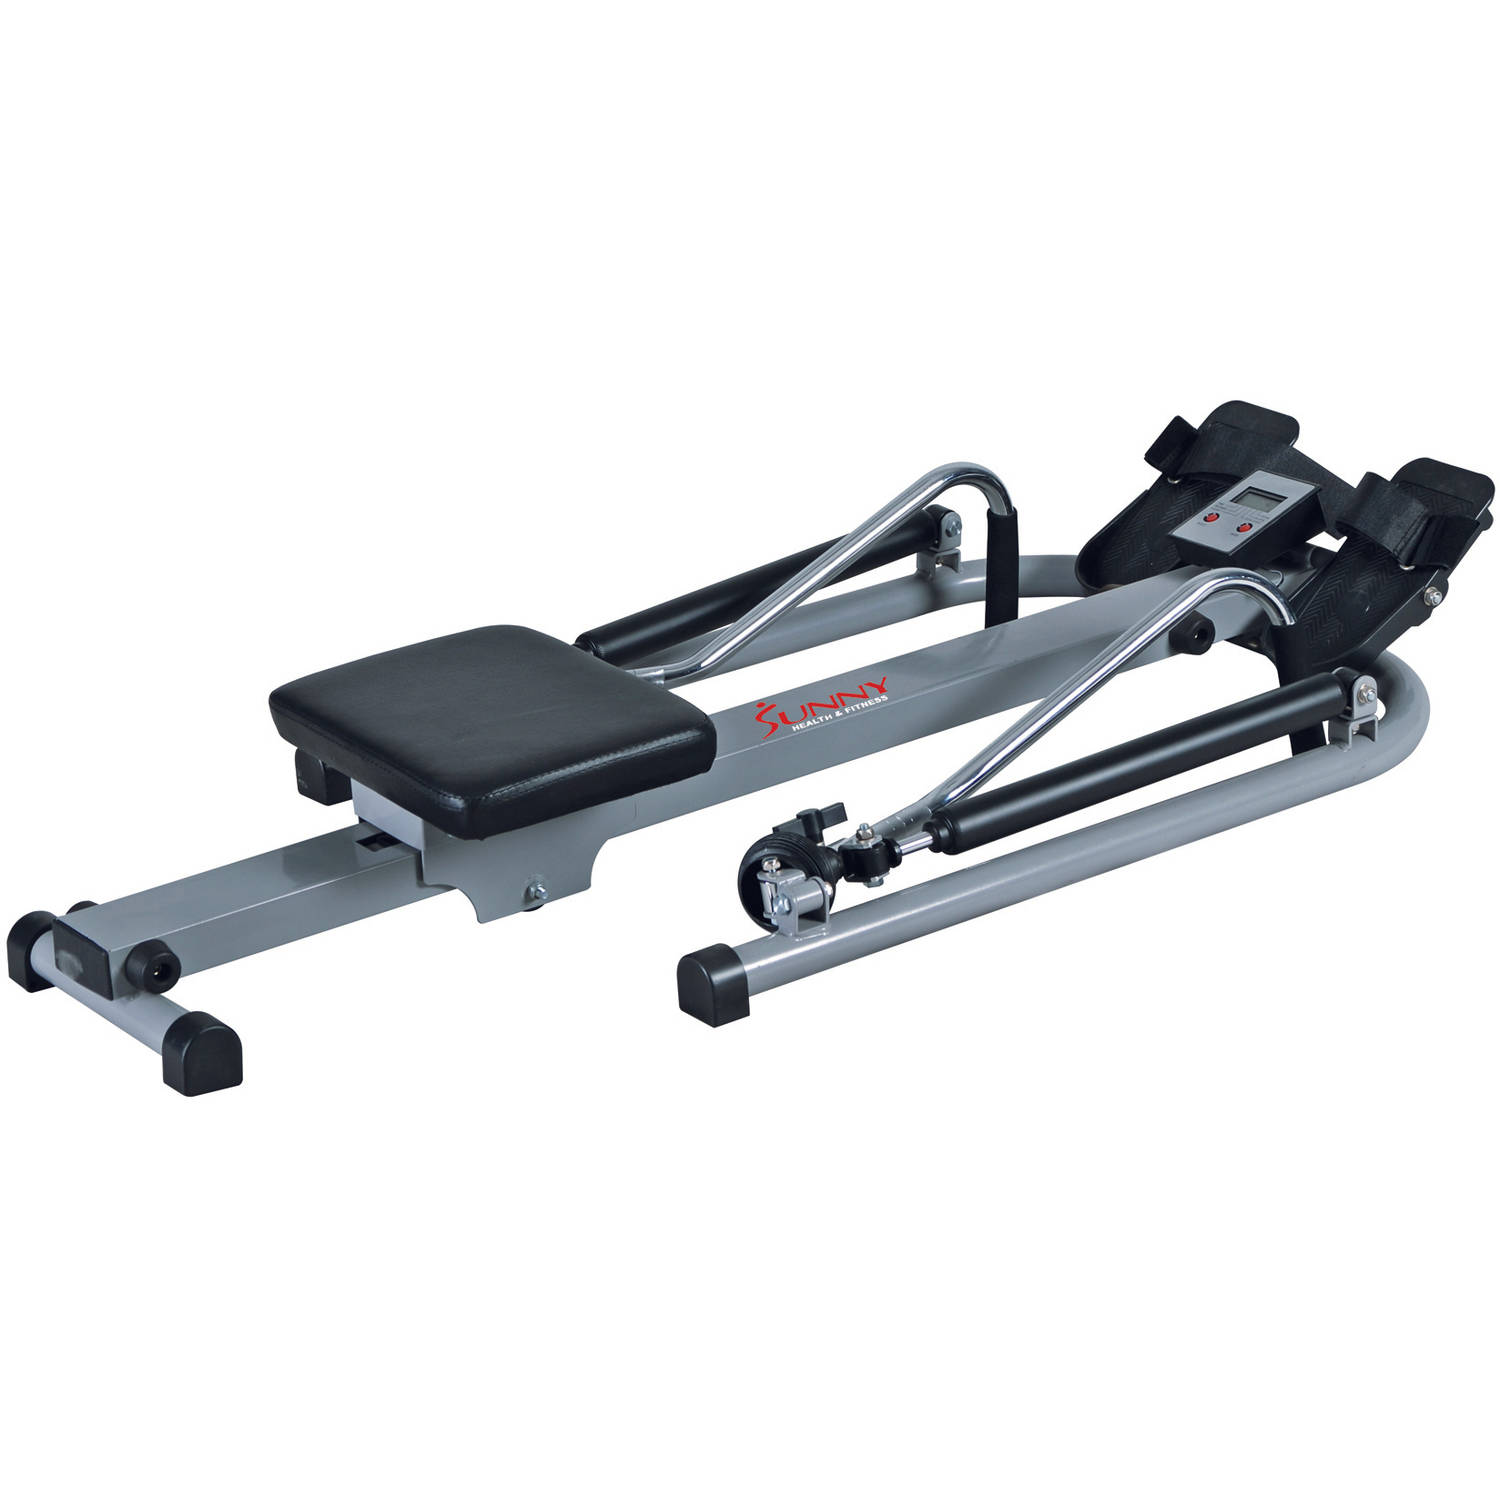 Sunny Health and Fitness SF-RW1005 Rowing Machine